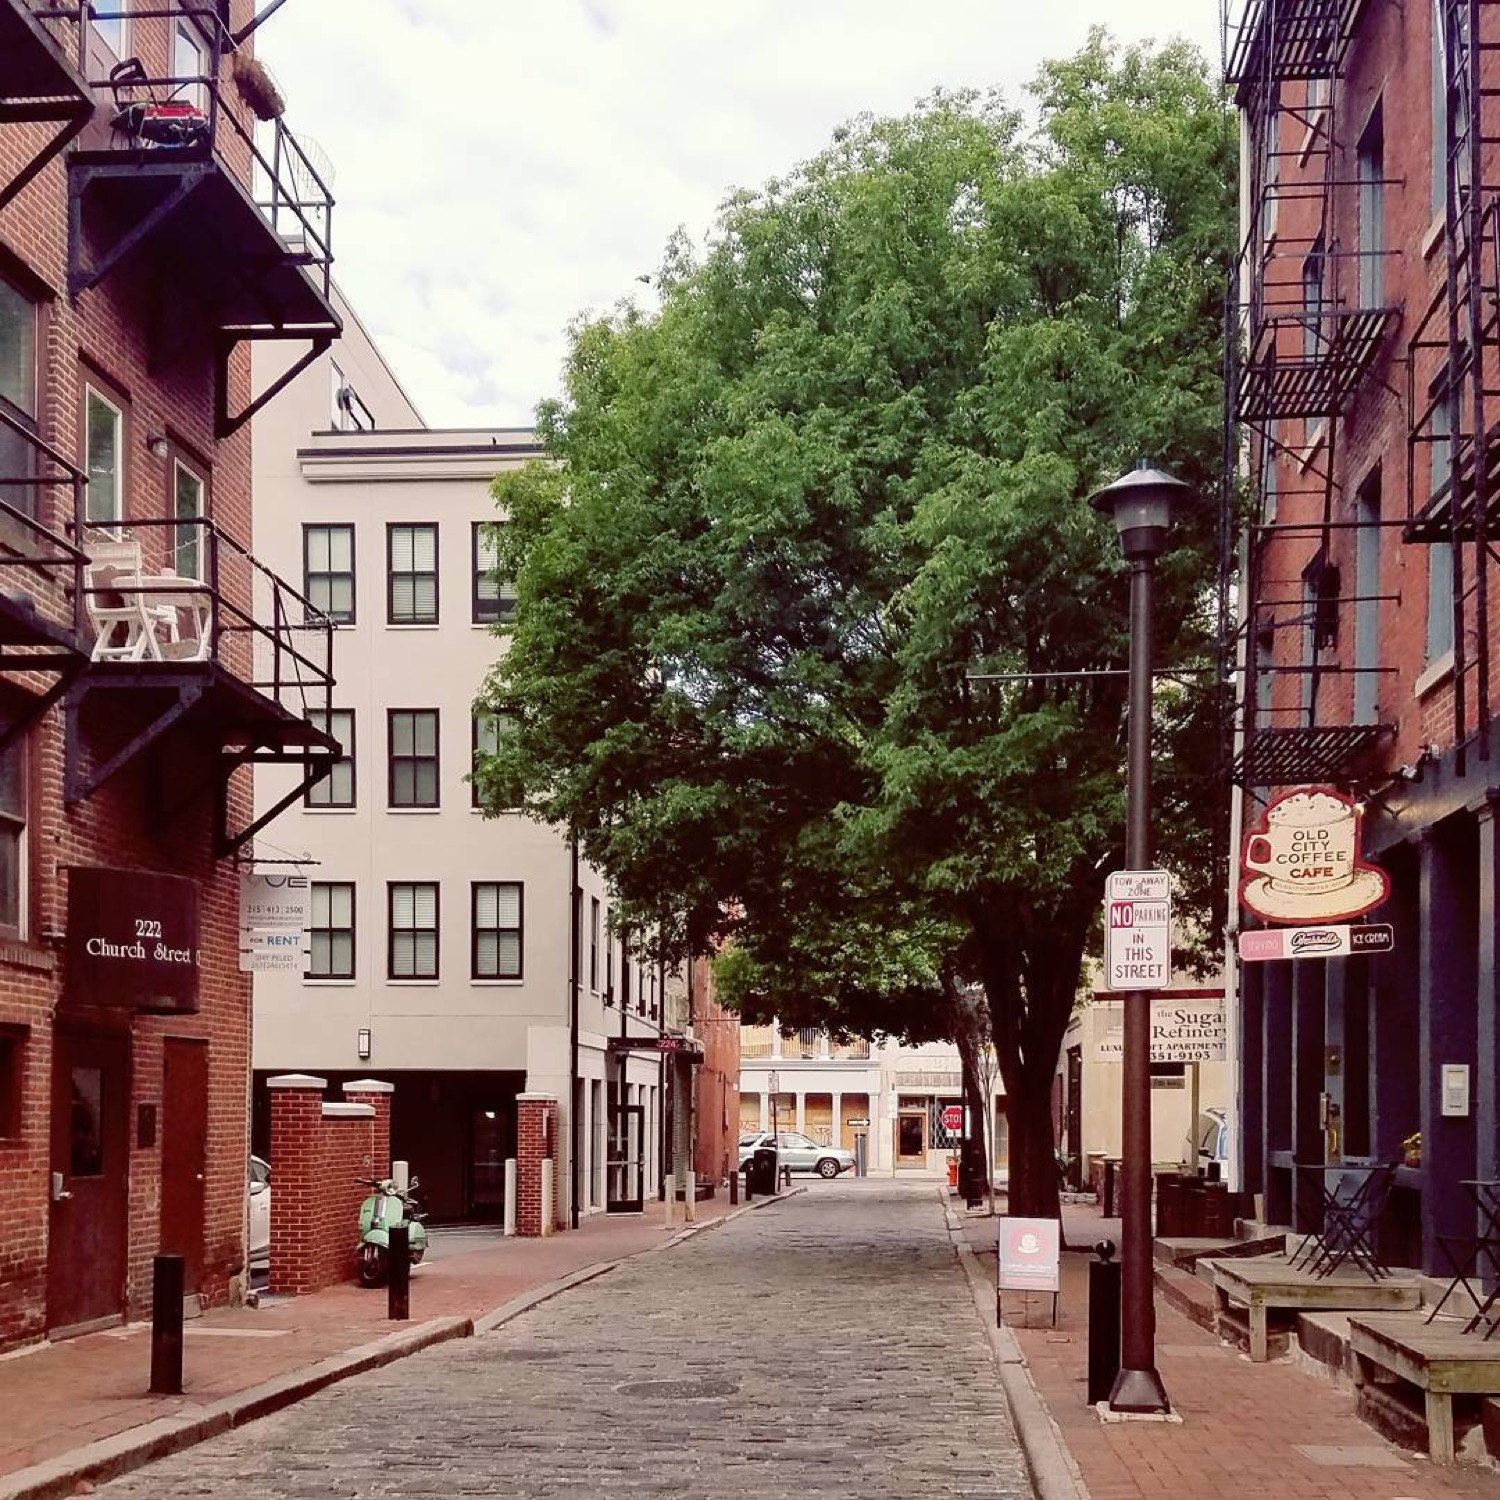 PLACE: Old City, Philadelphia / MILES FROM CINCY: 568 / ABOUT: Three beautiful neighborhoods make up Philadelphia's eastern riverfront: Old City, Society Hill, and Queen Village. If you haven't visited them, do it. They make Philadelphia one of the coolest cities in the country. / IImage courtesy of Instagram user @mm.clermont // Published: 5.14.17